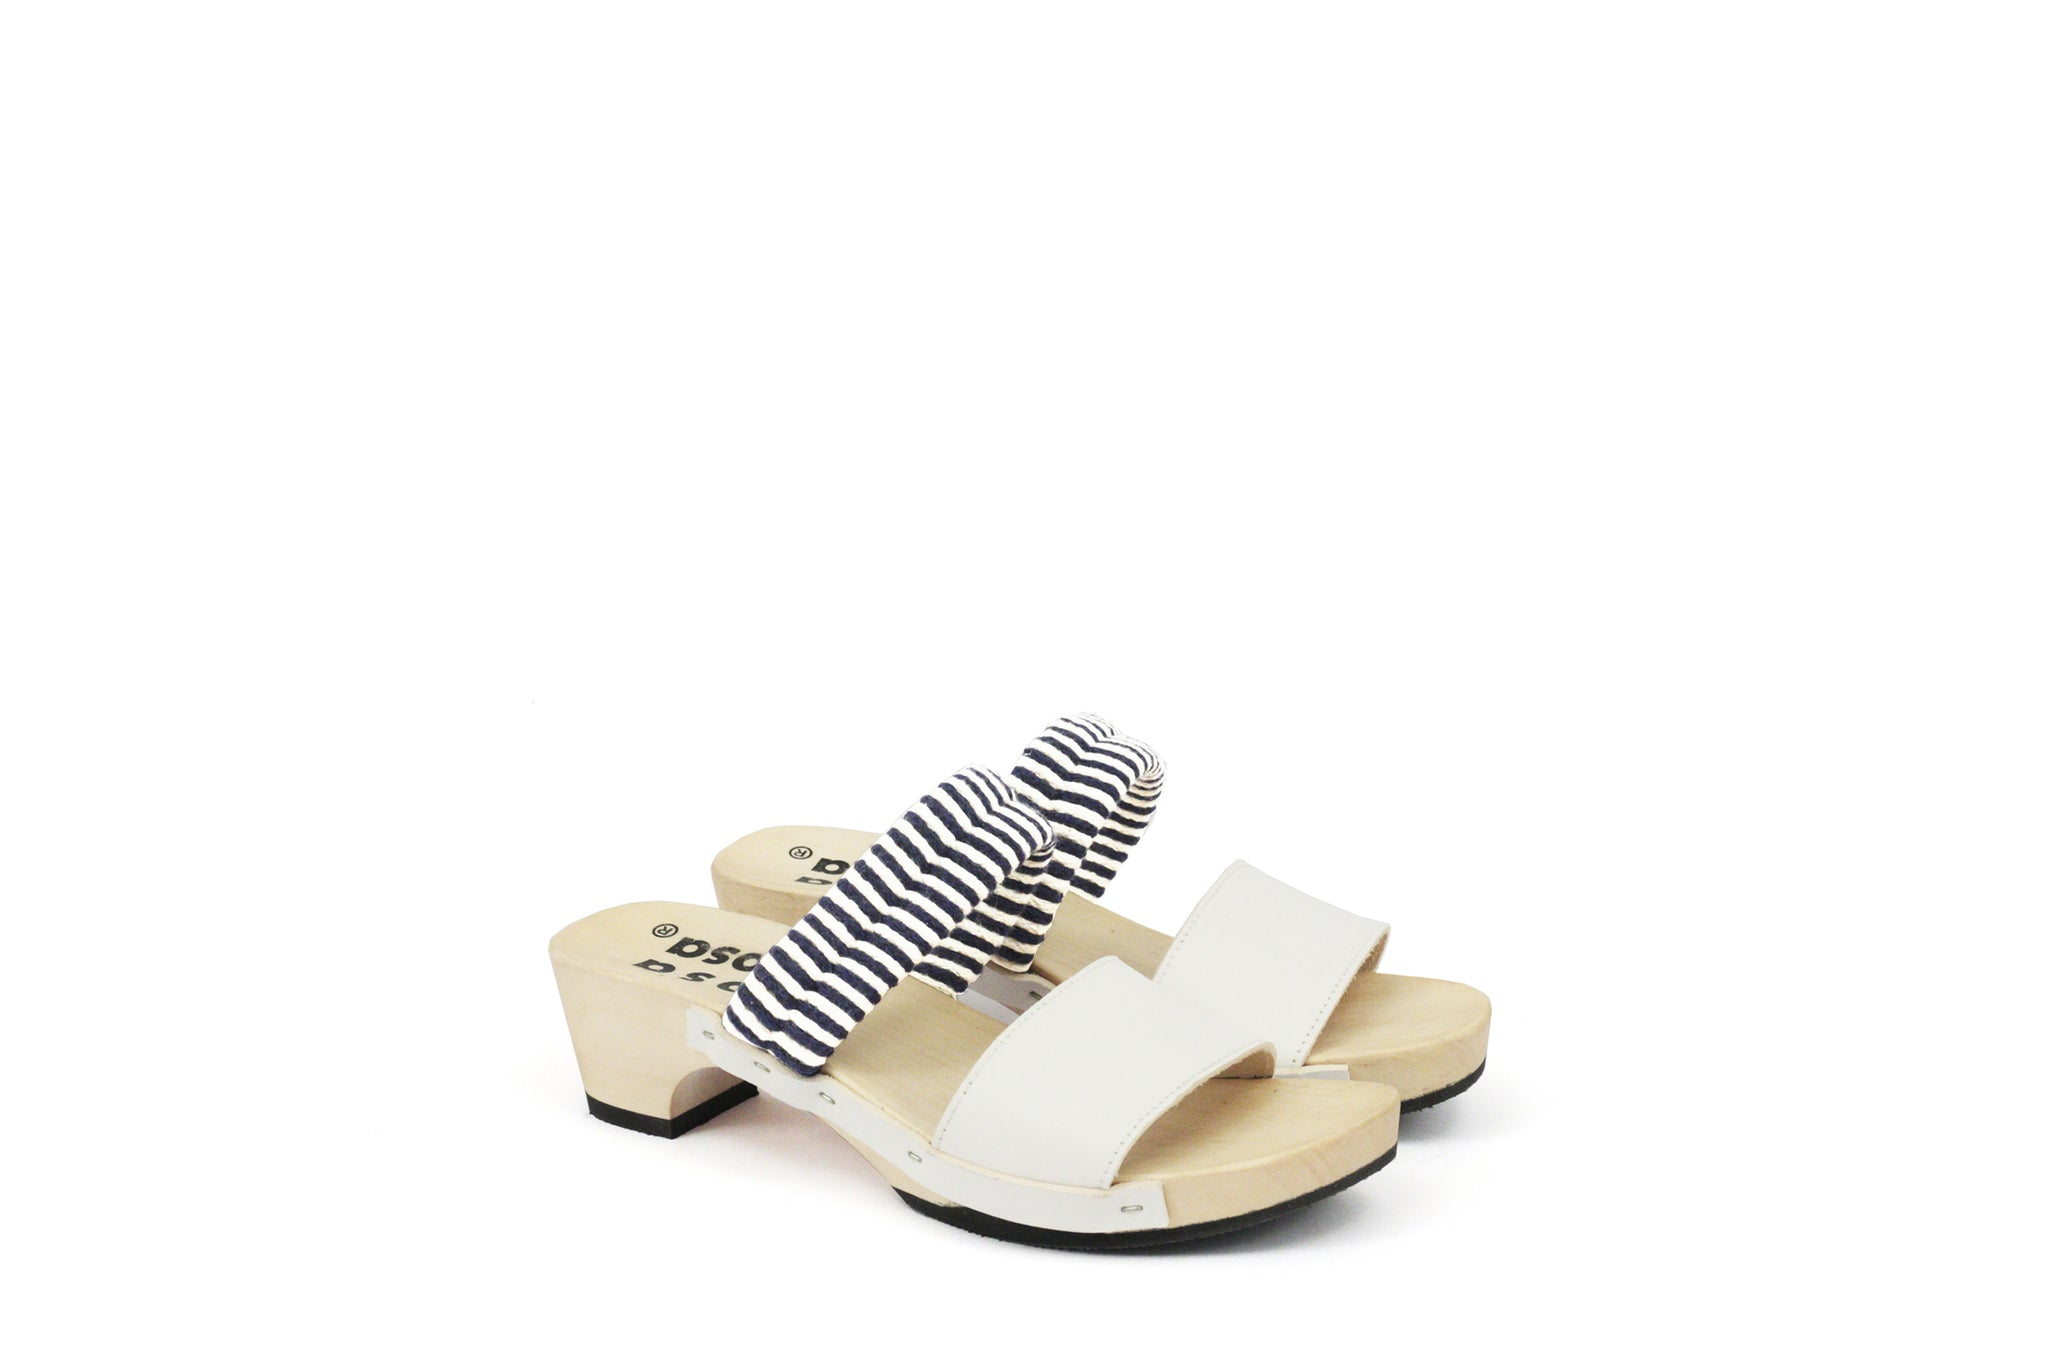 MAGO SANDALS NAVY/NATURAL BIANCO